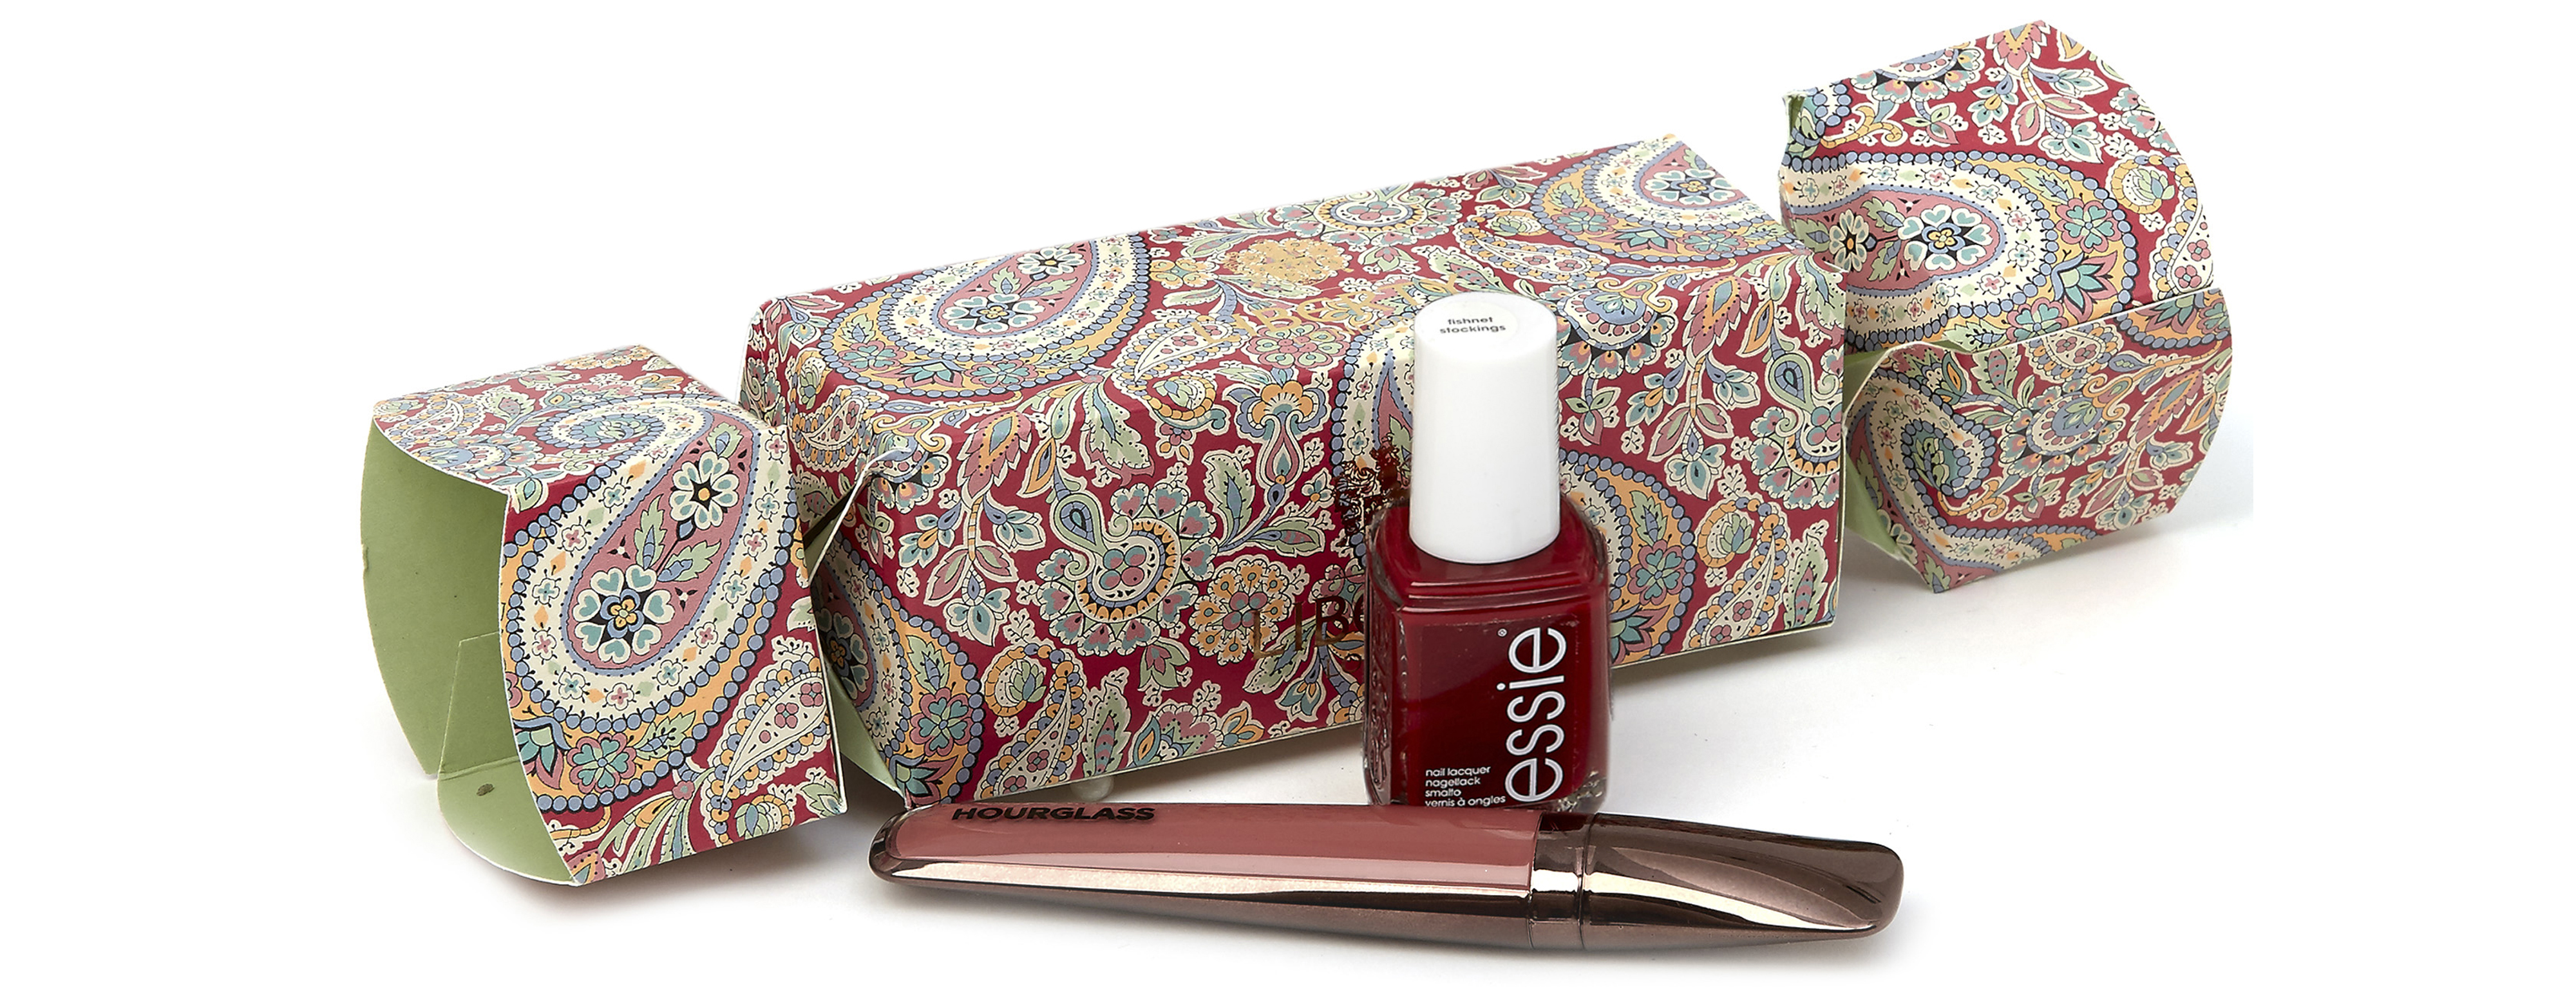 Liberty London Beauty Cracker with Hourglass and Essie